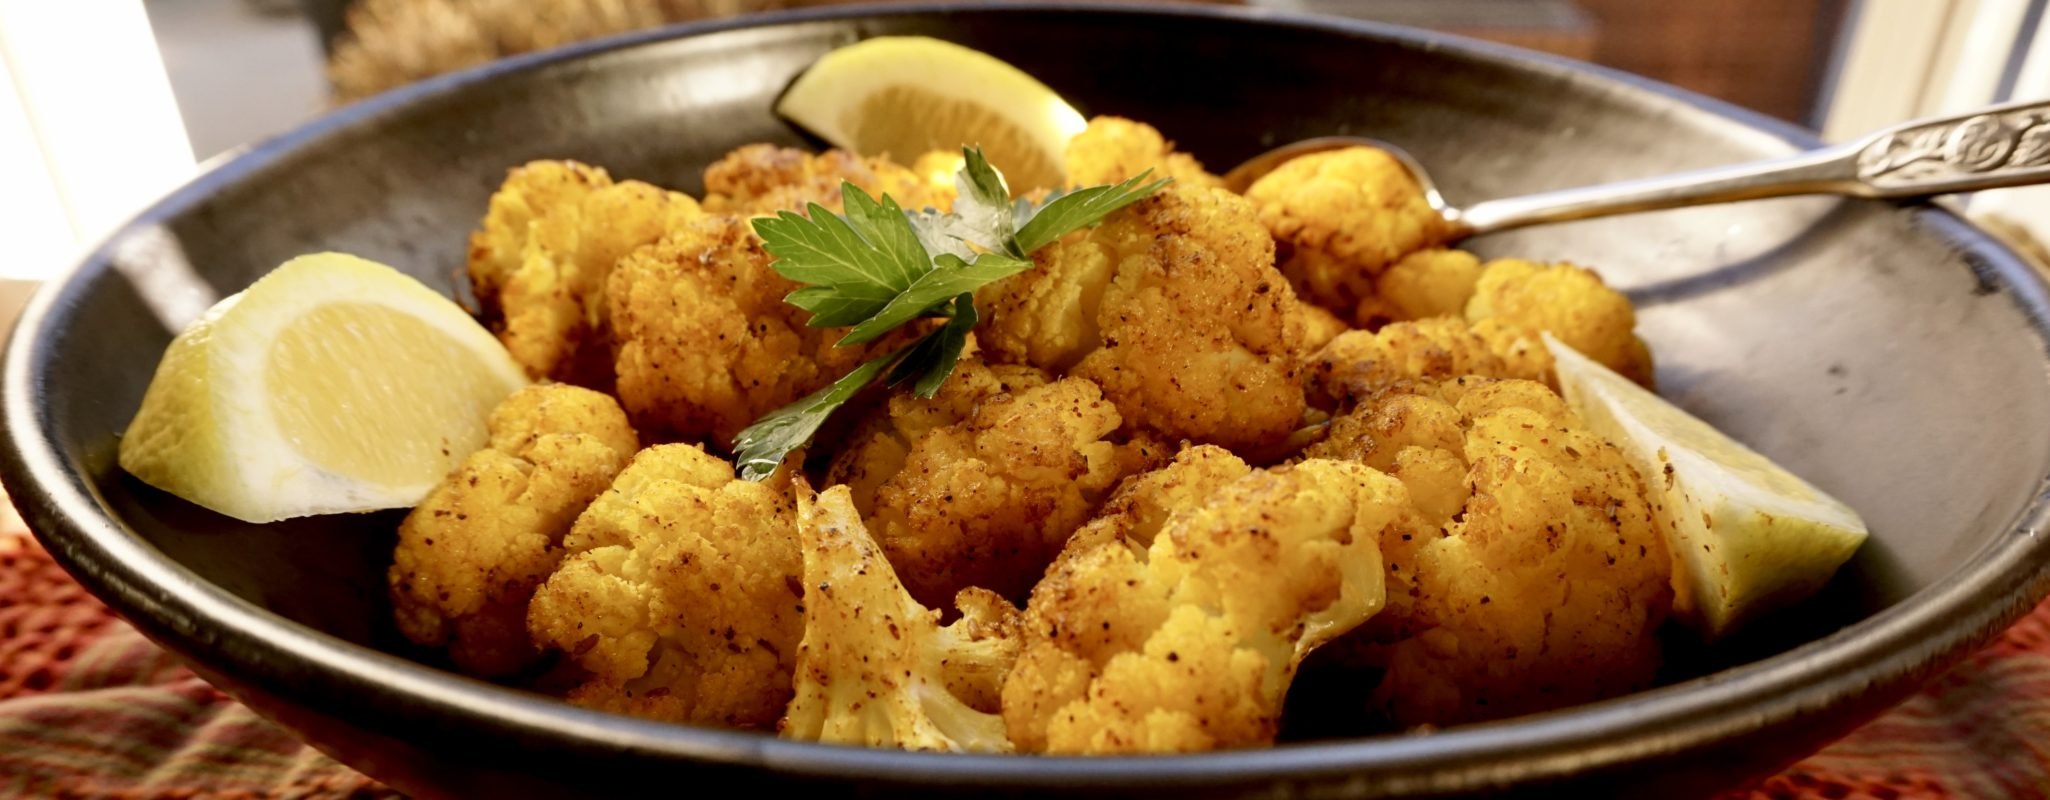 So Eat It, Just Eat it (Roasted Cauliflower with Cumin, Turmeric and Lemon)